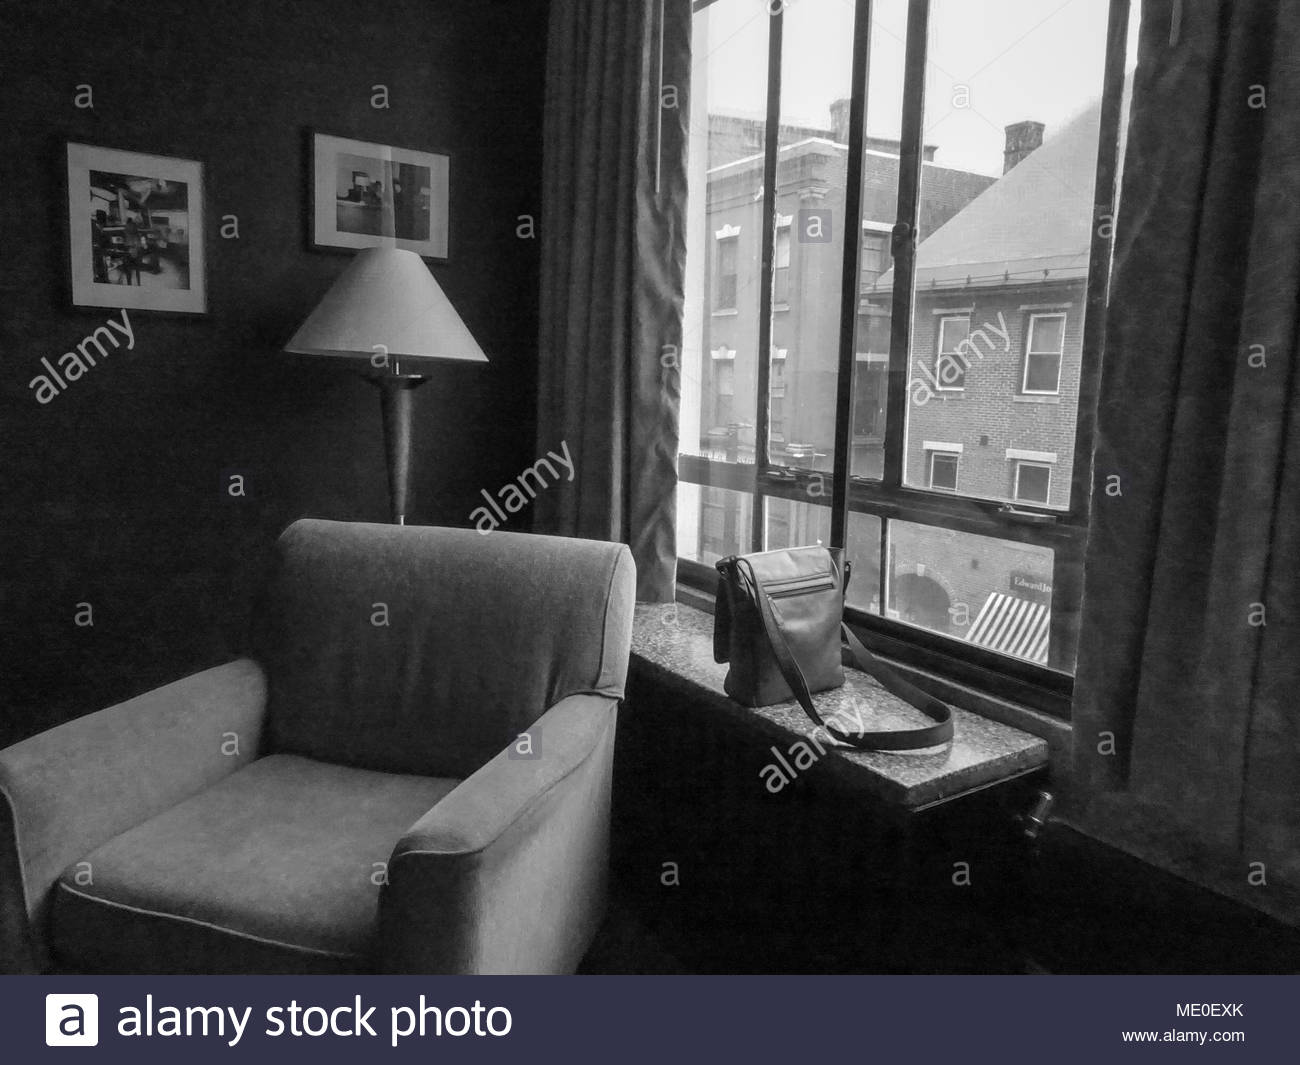 A leather handbag left on a windowsill in a hotel room in Vermont. - Stock Image